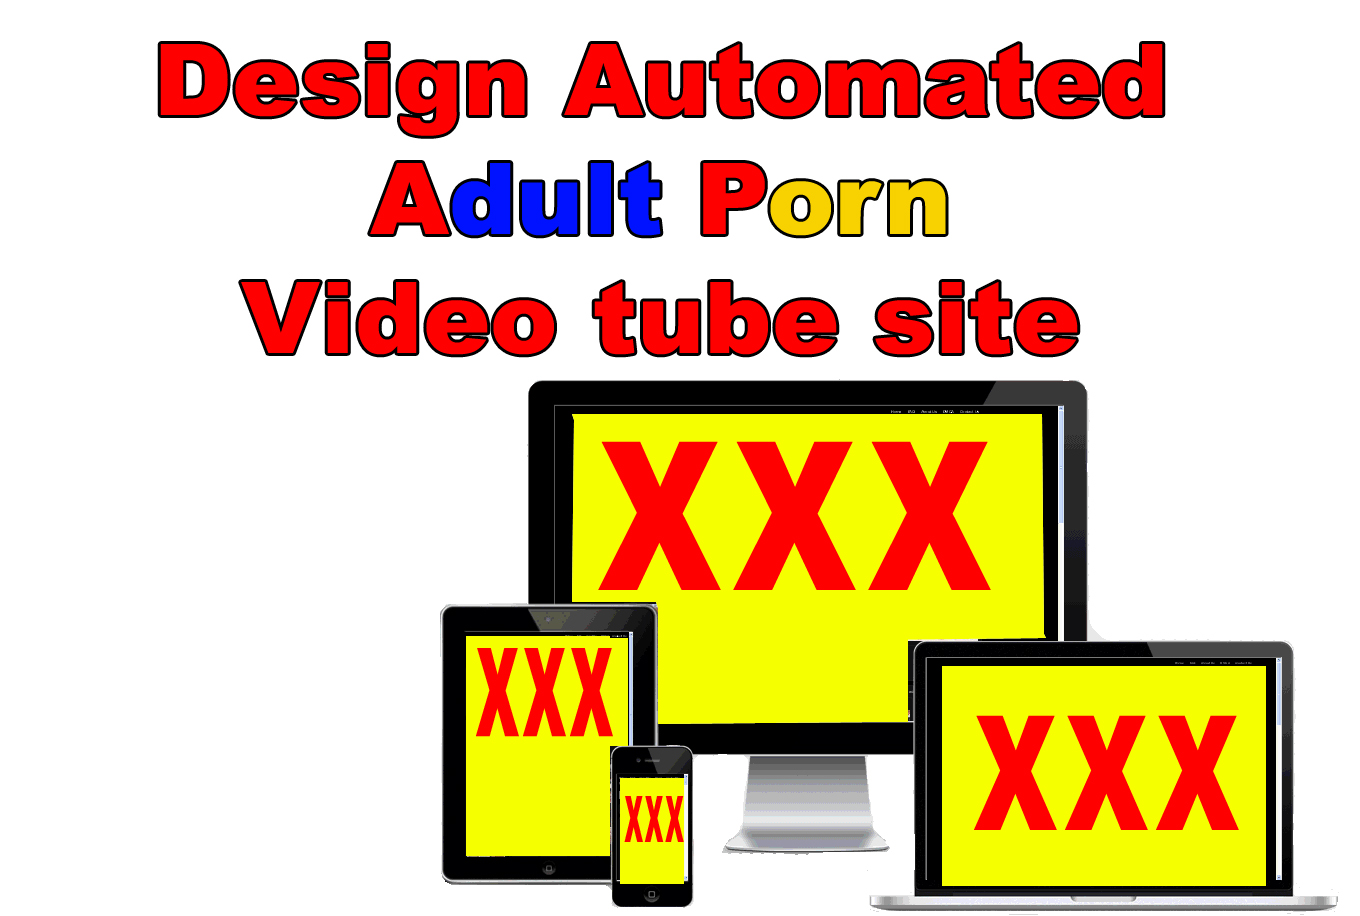 Design automated ads classifieds web site